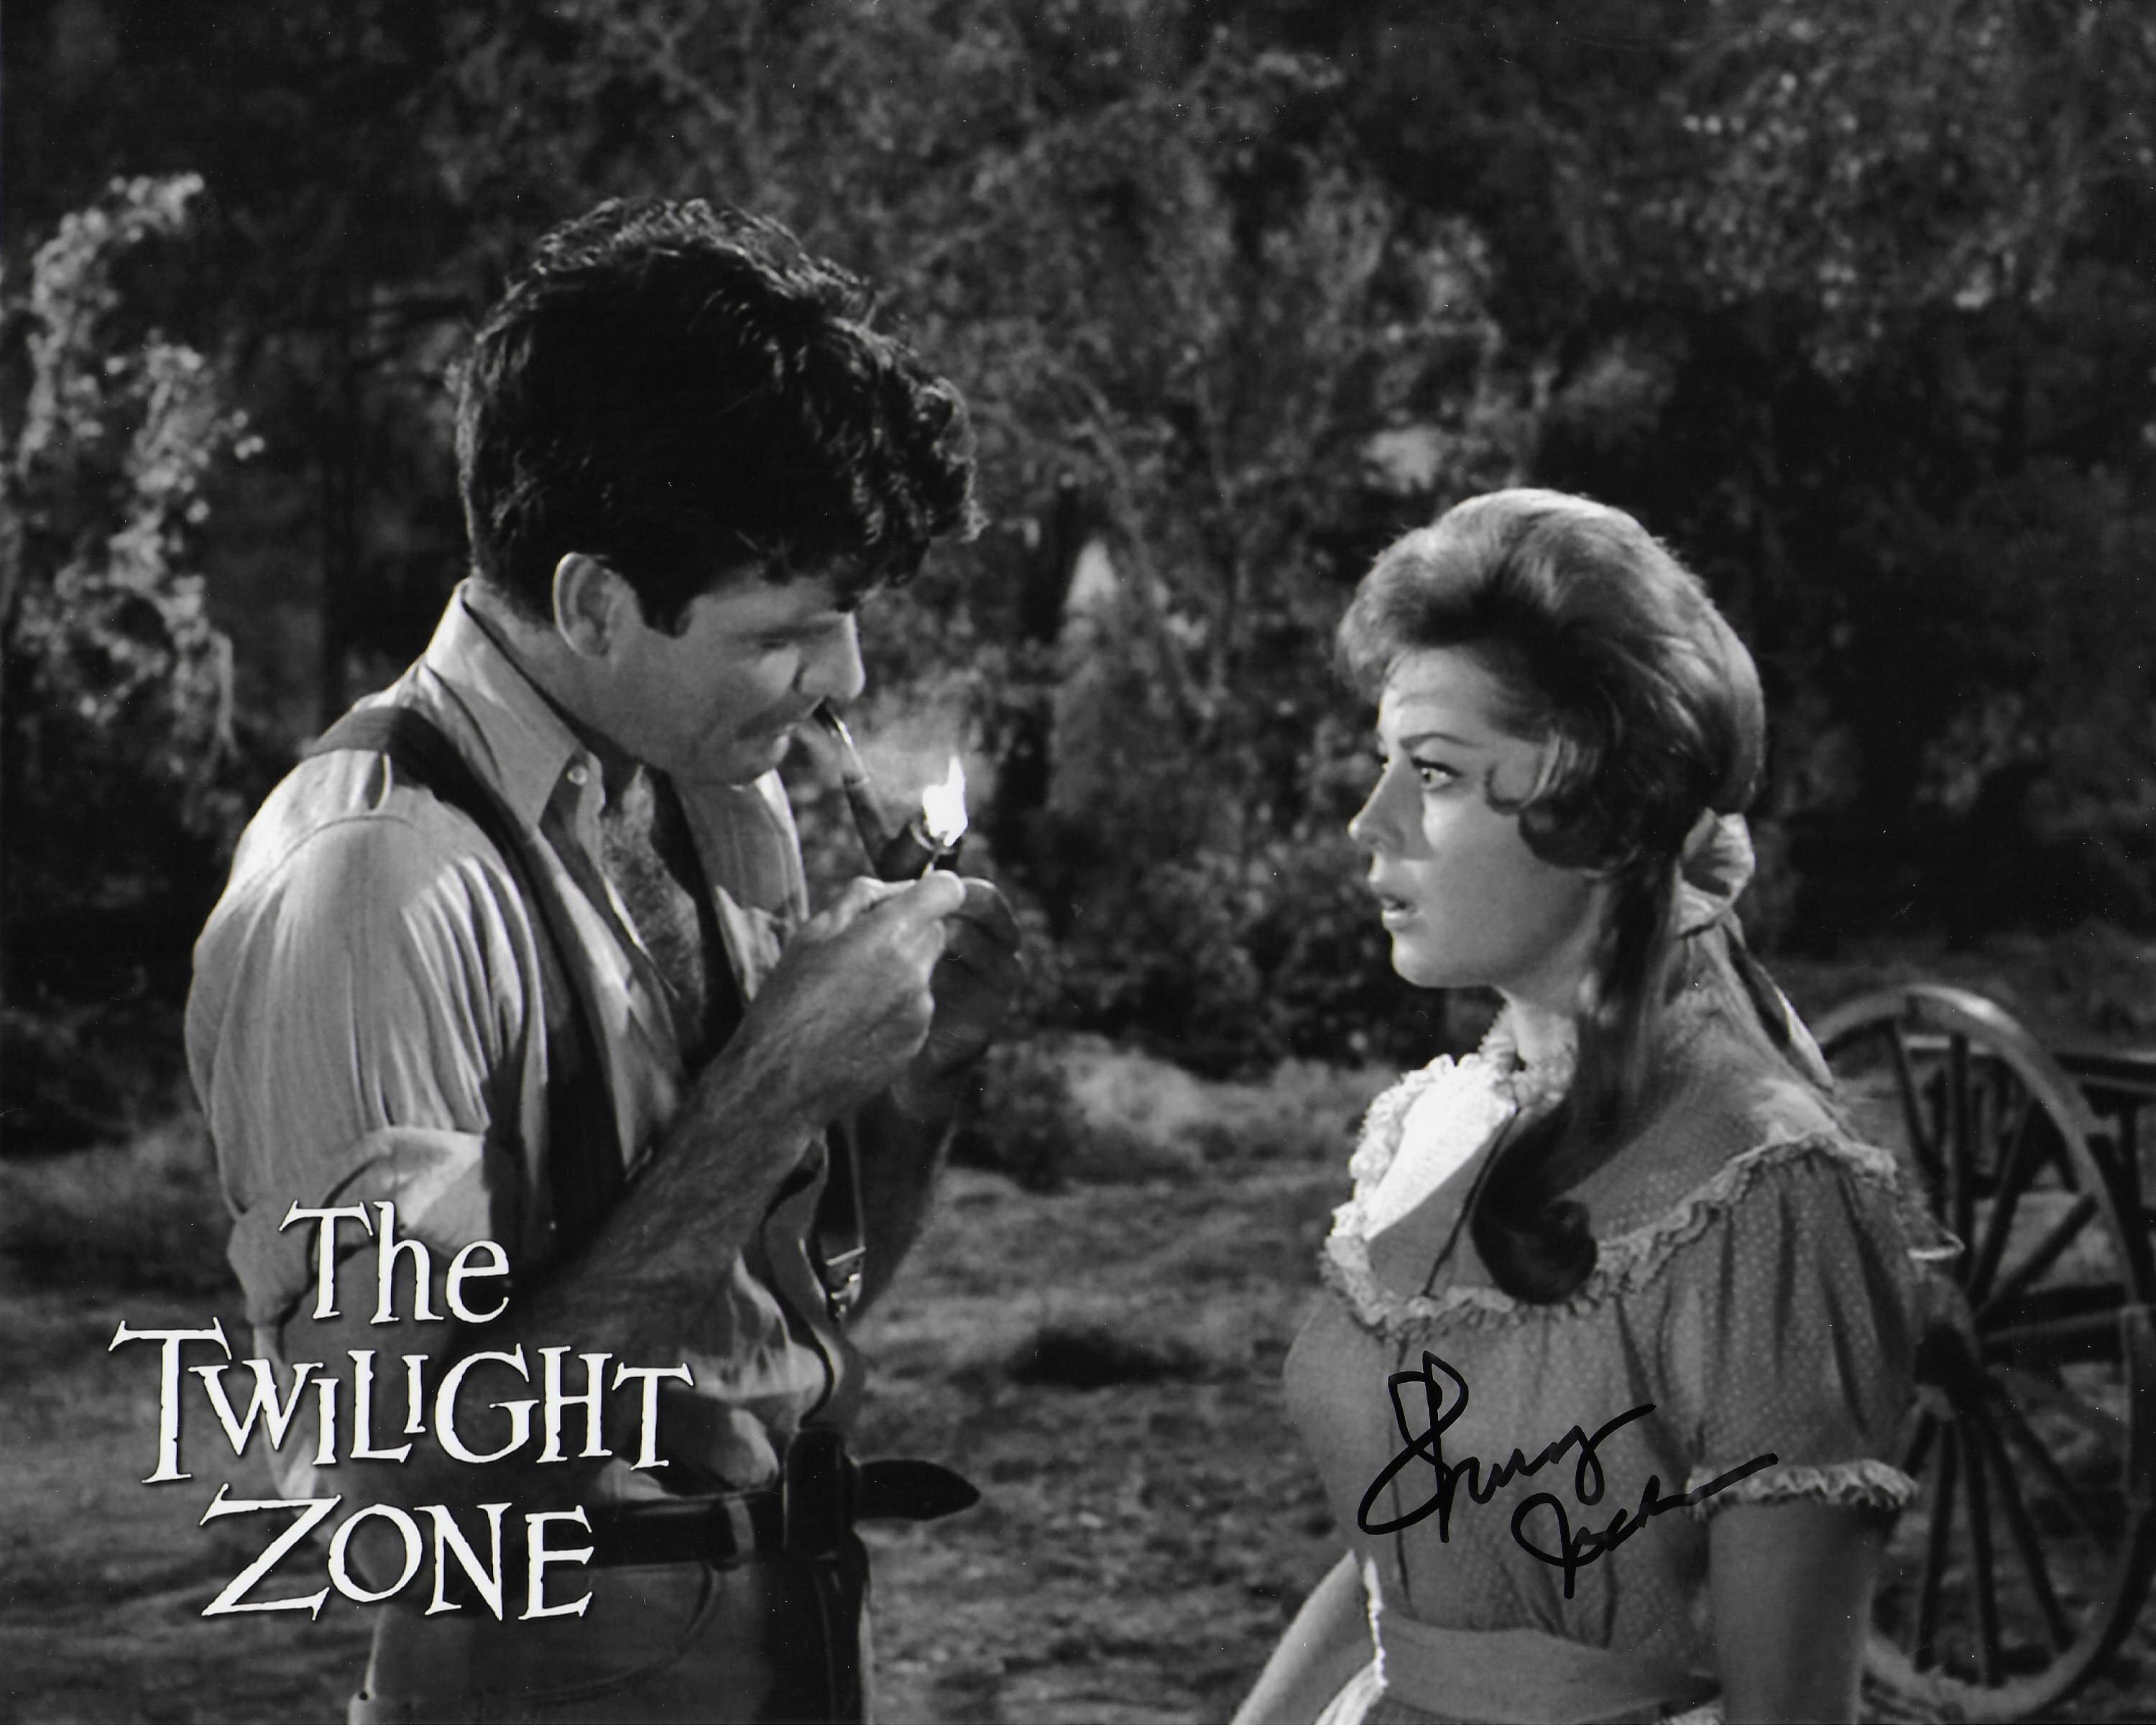 Sherry Jackson Twilight Zone 5